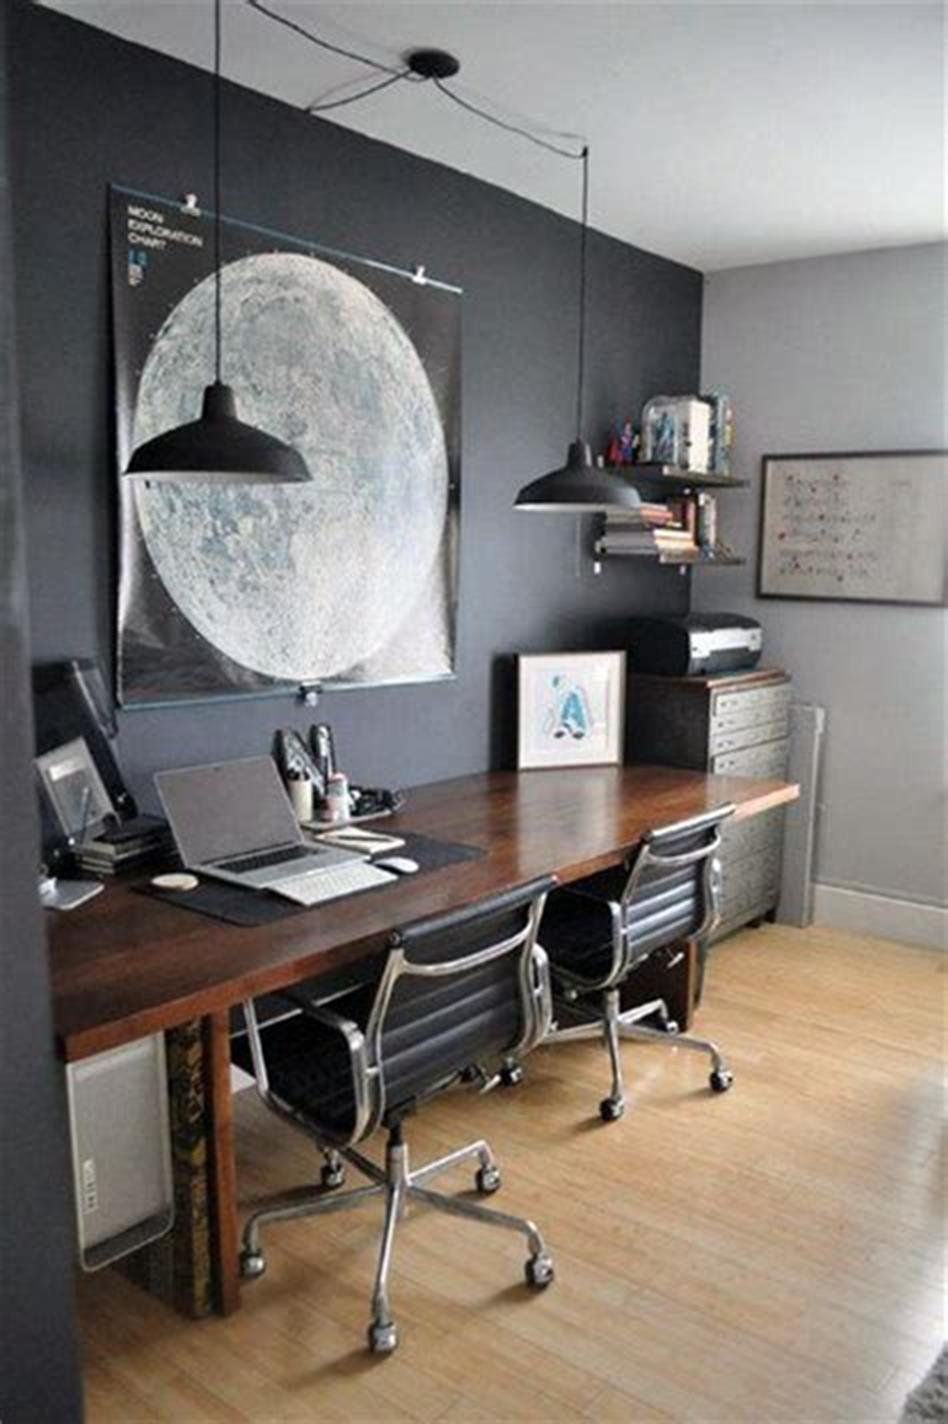 50 Best Small Space Office Decorating Ideas On a Budget 2019 22